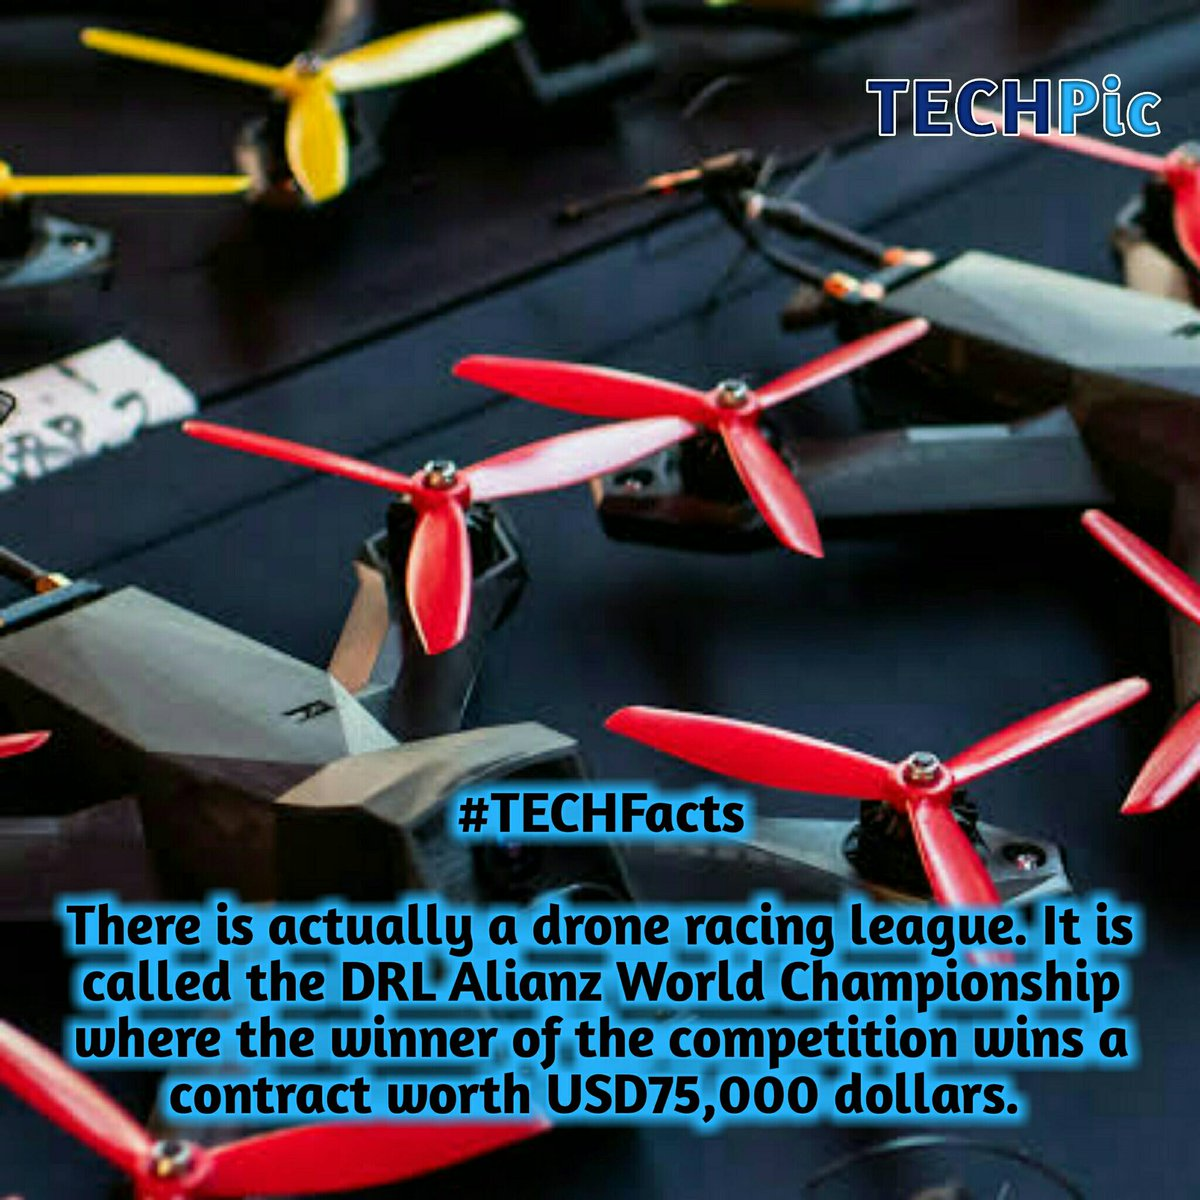 #TECHFacts  There is actually a drone racing league. It is called the DRL Alianz World Championship where the winner of the competition wins a contract worth USD75,000 dollars. pic.twitter.com/F2akCJCa7W